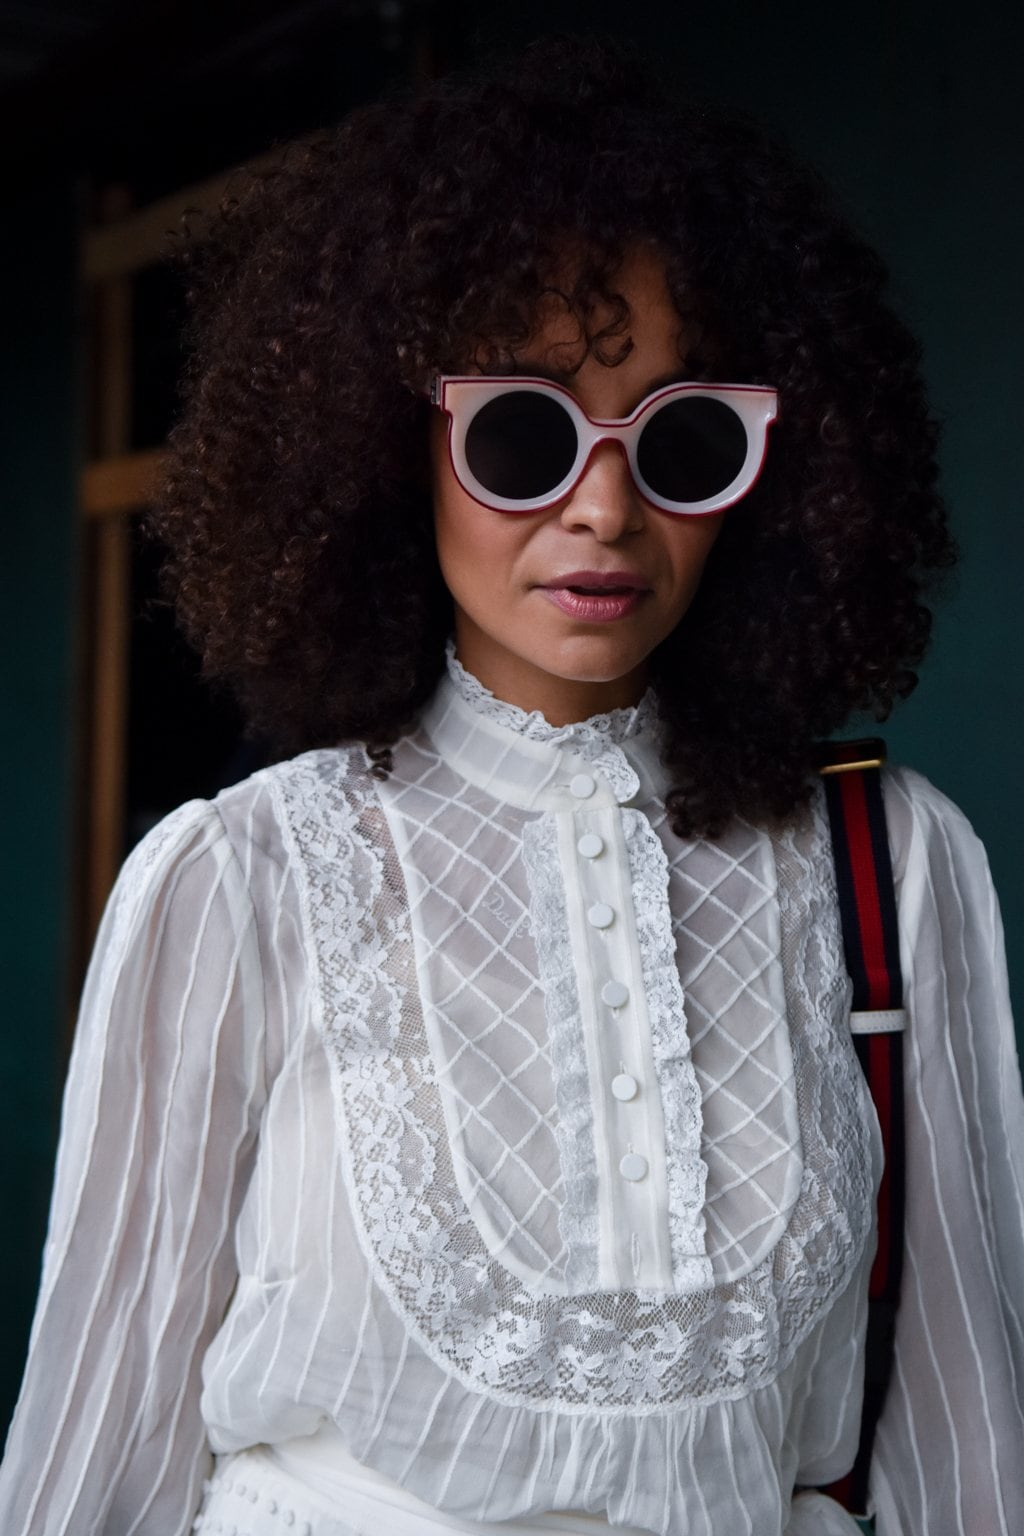 NYFW SS19 street style: Natural haired street styler wearing a high neck victoriana shirt and circle sunglasses